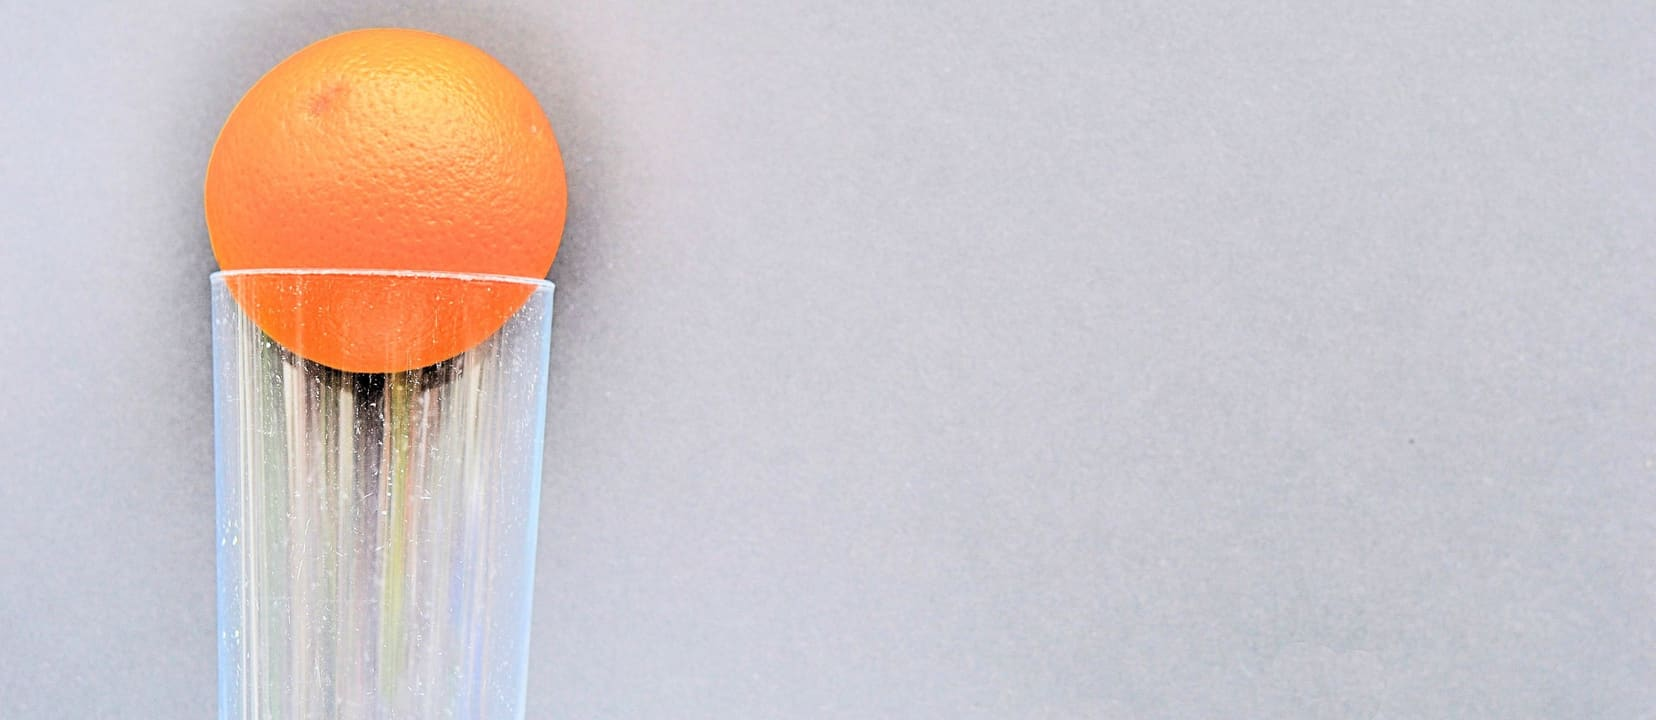 Juicing Removes More Than Just Fiber